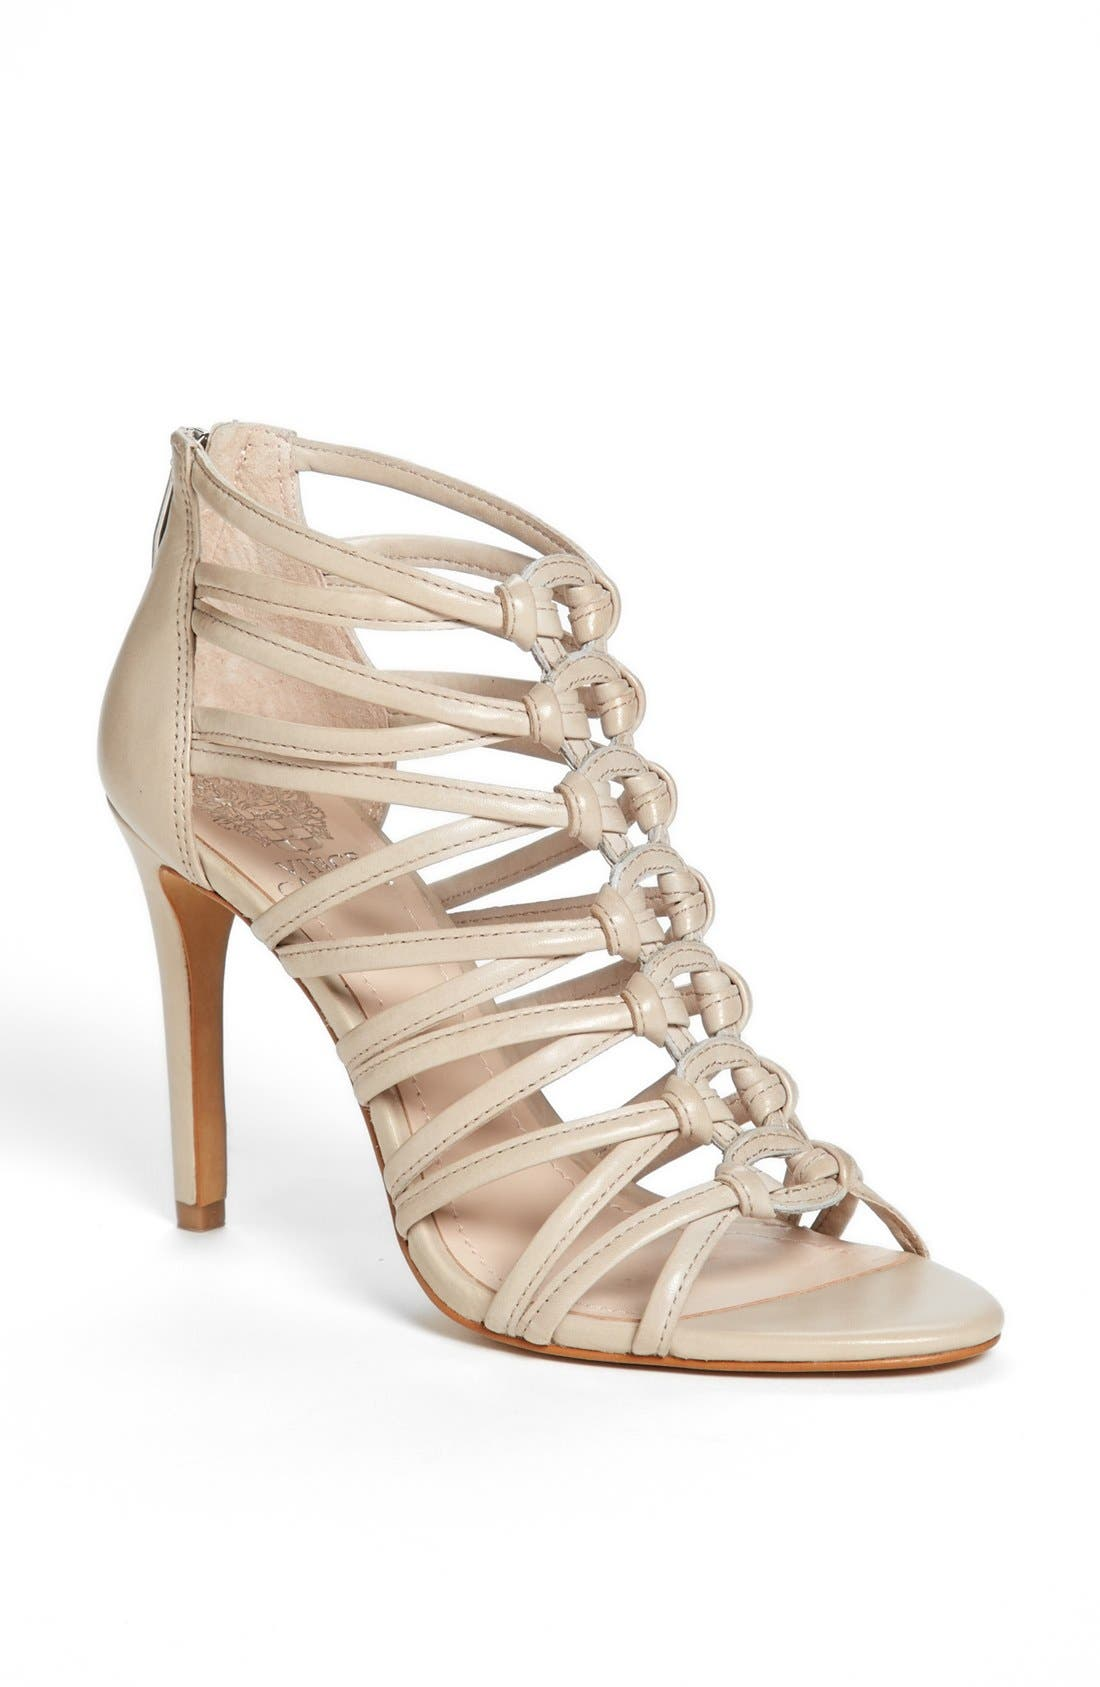 Main Image - Vince Camuto 'Ombra' Nappa Leather Sandal